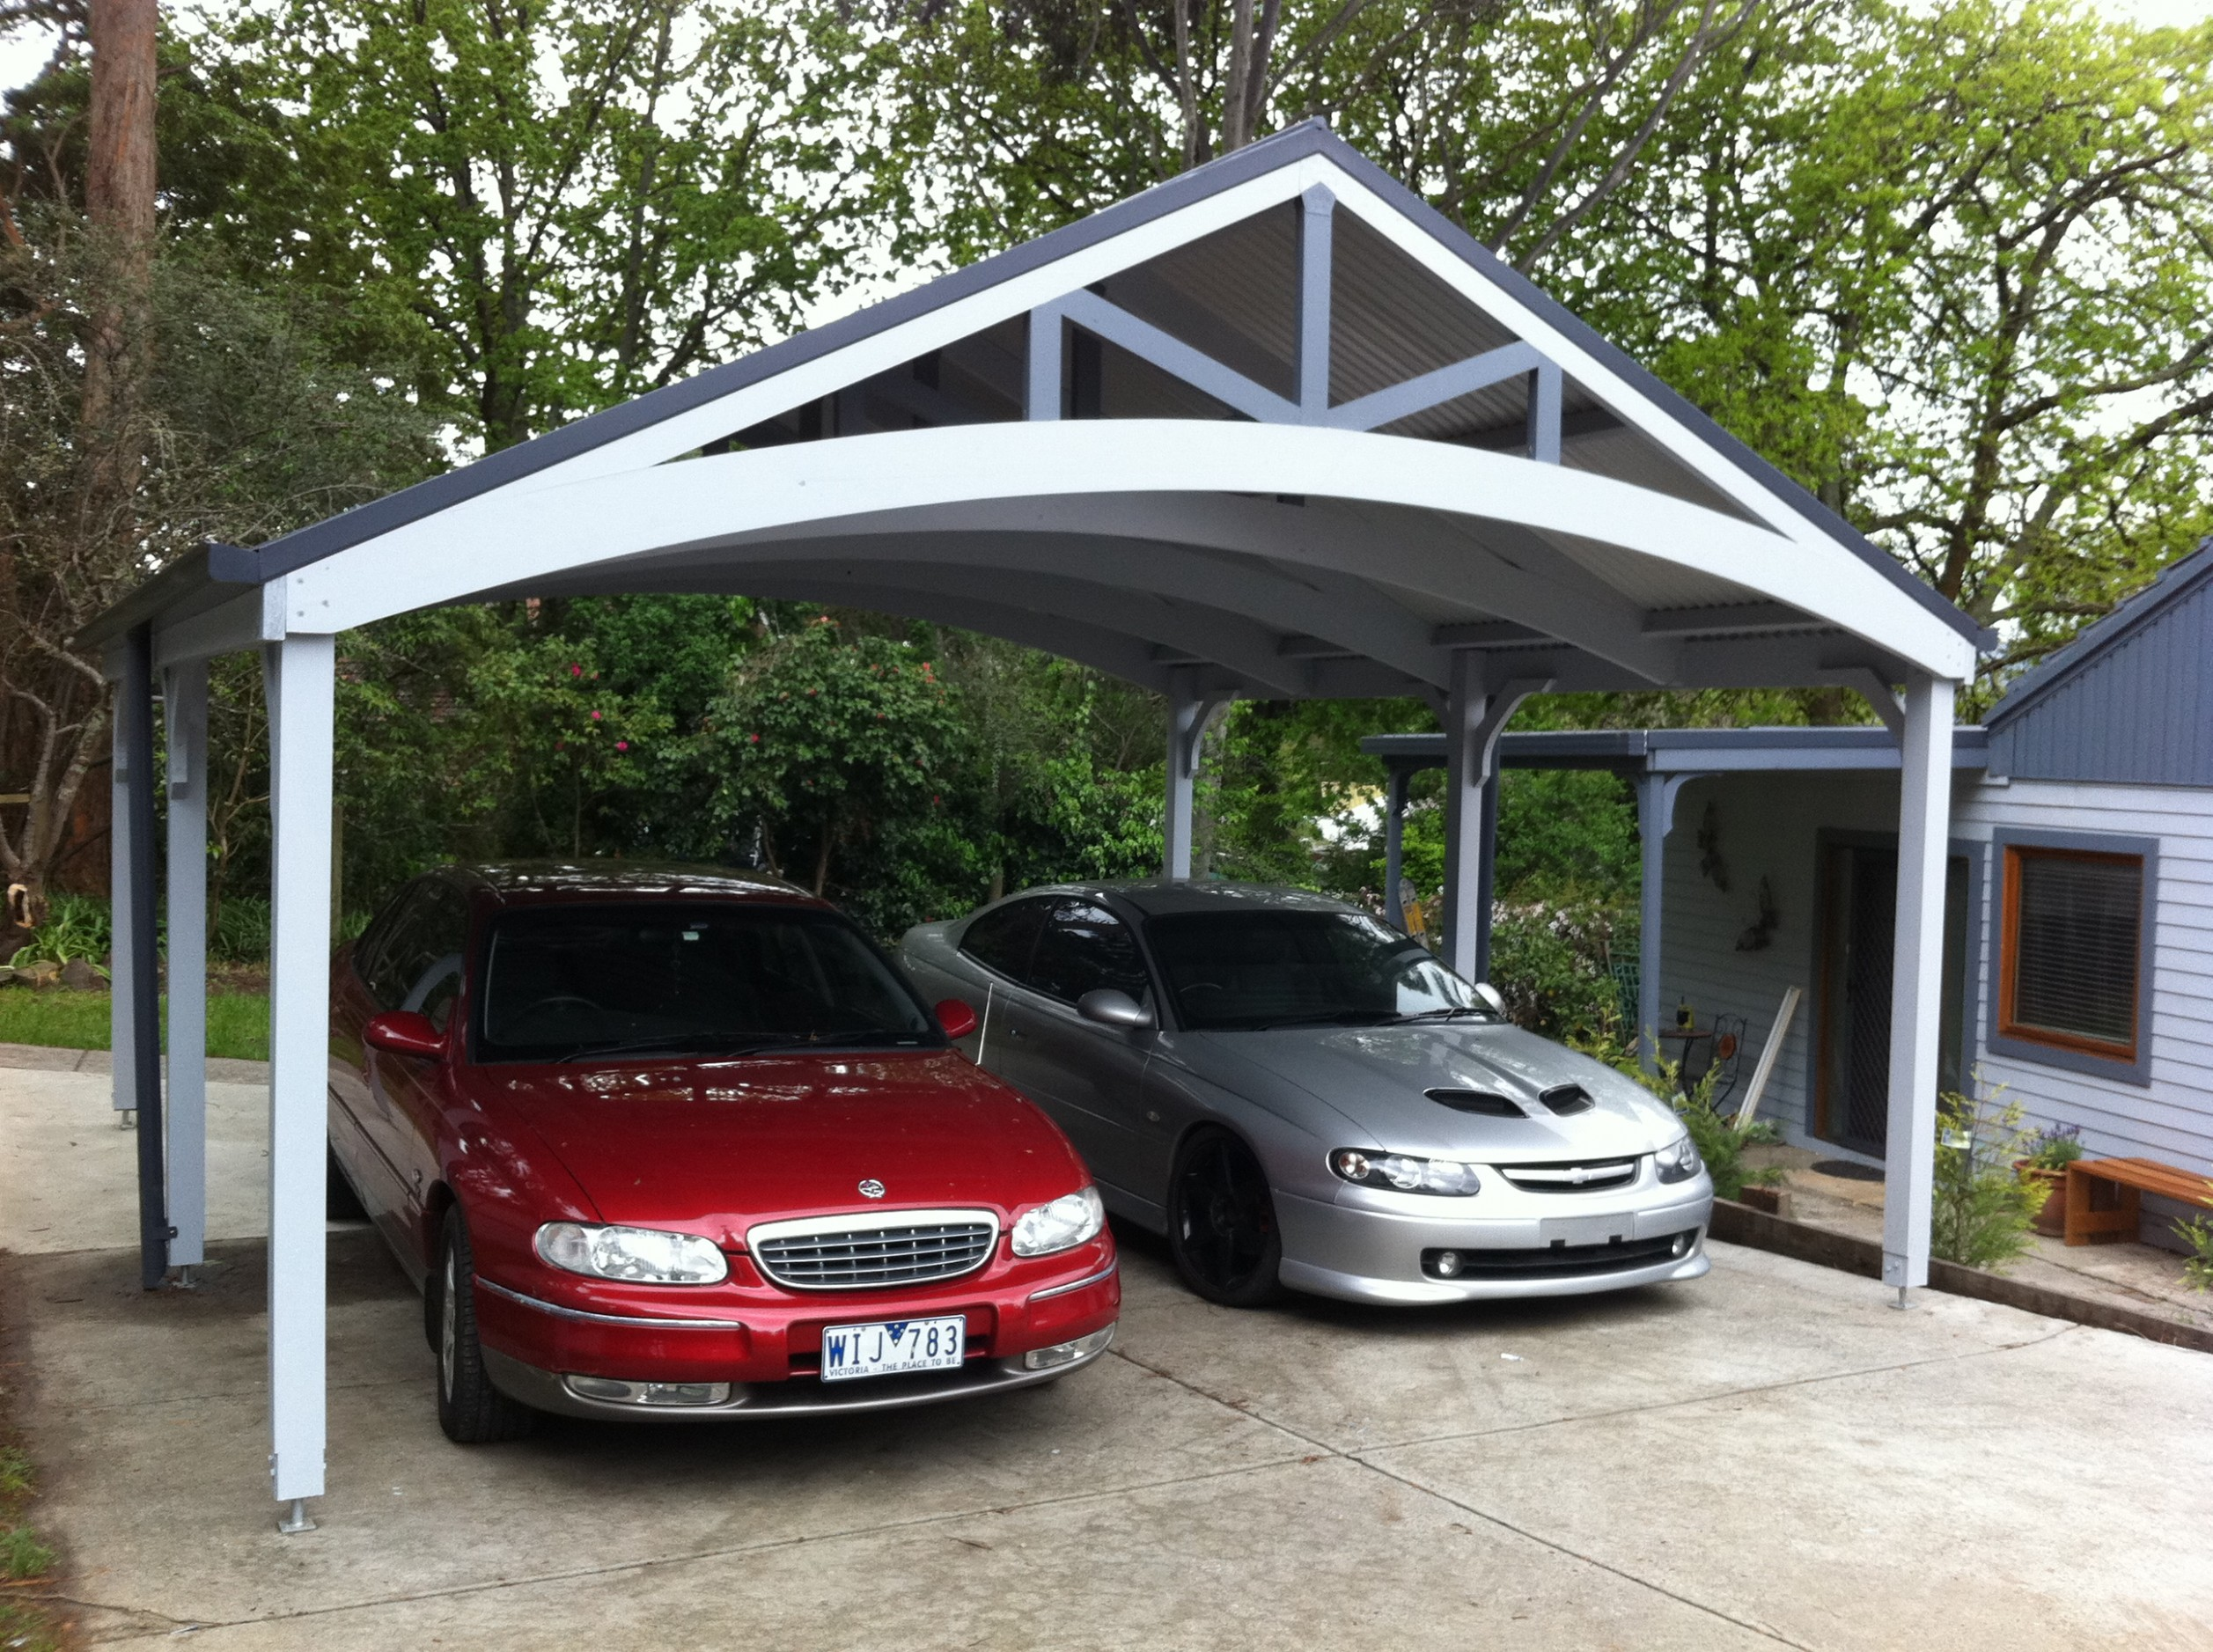 Carport Kit Is So Famous, But Why? | carport kit